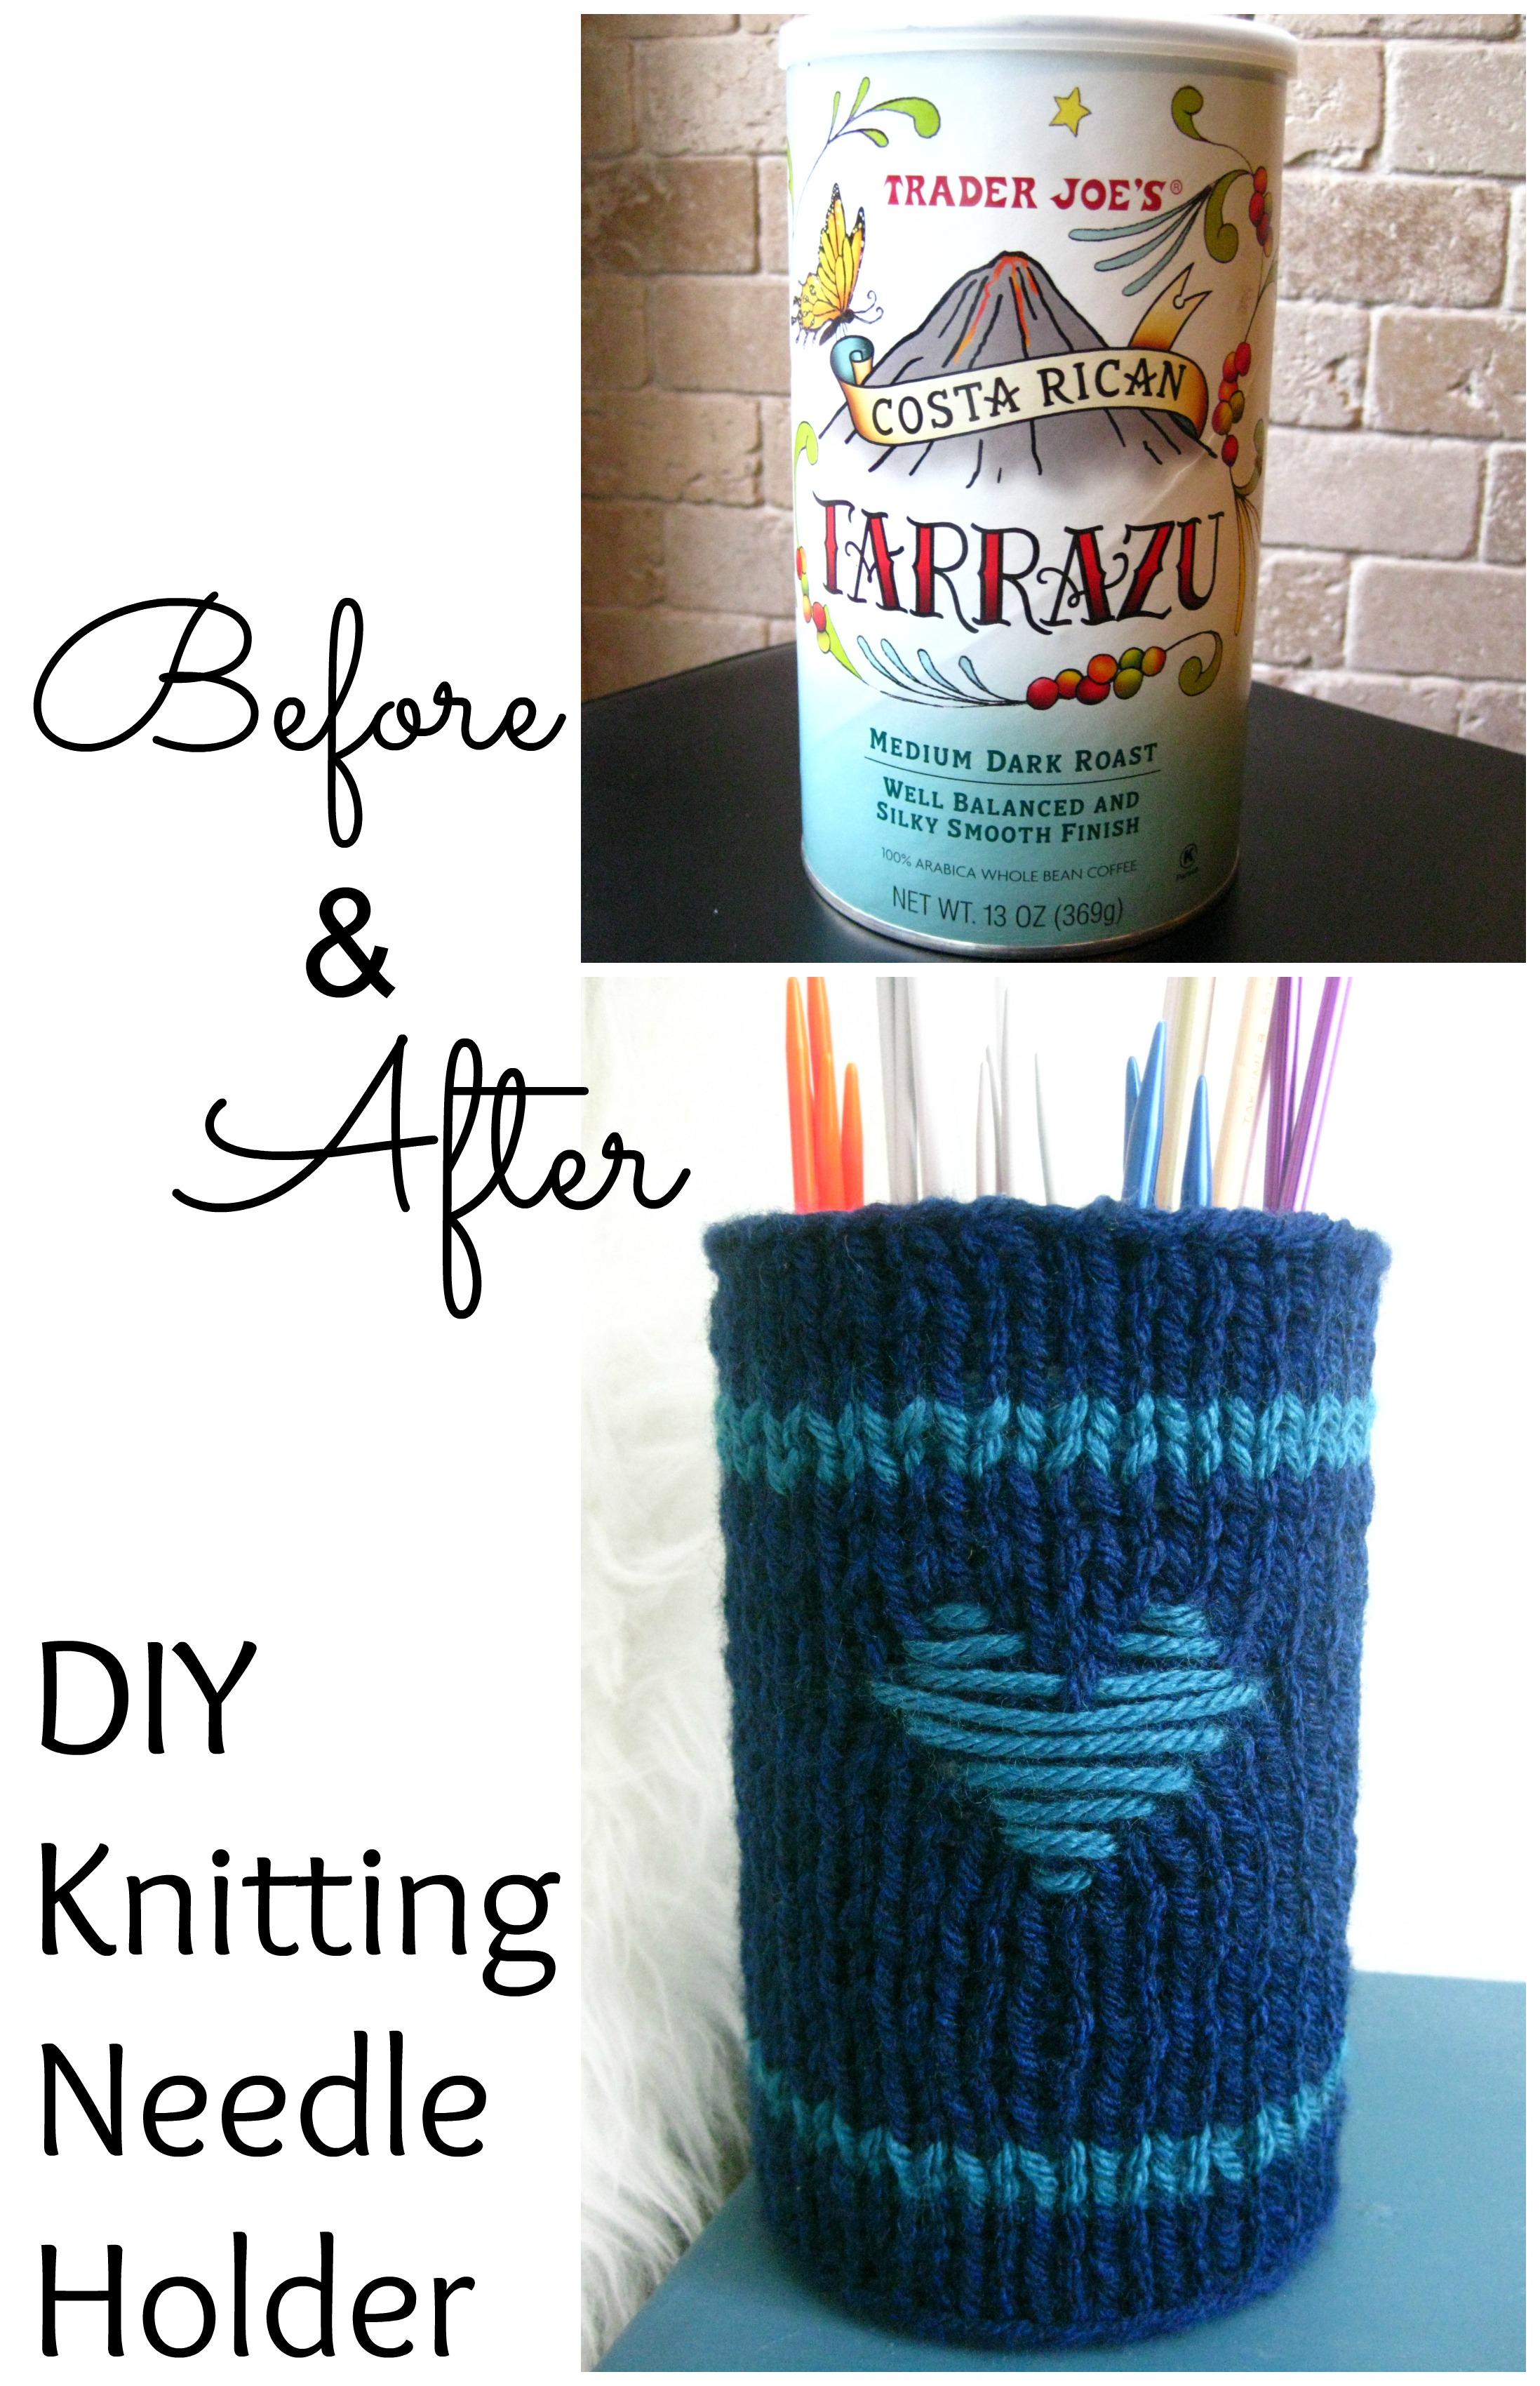 DIY Knitting Needle Holder via FuzzyCloudDesigns Blog